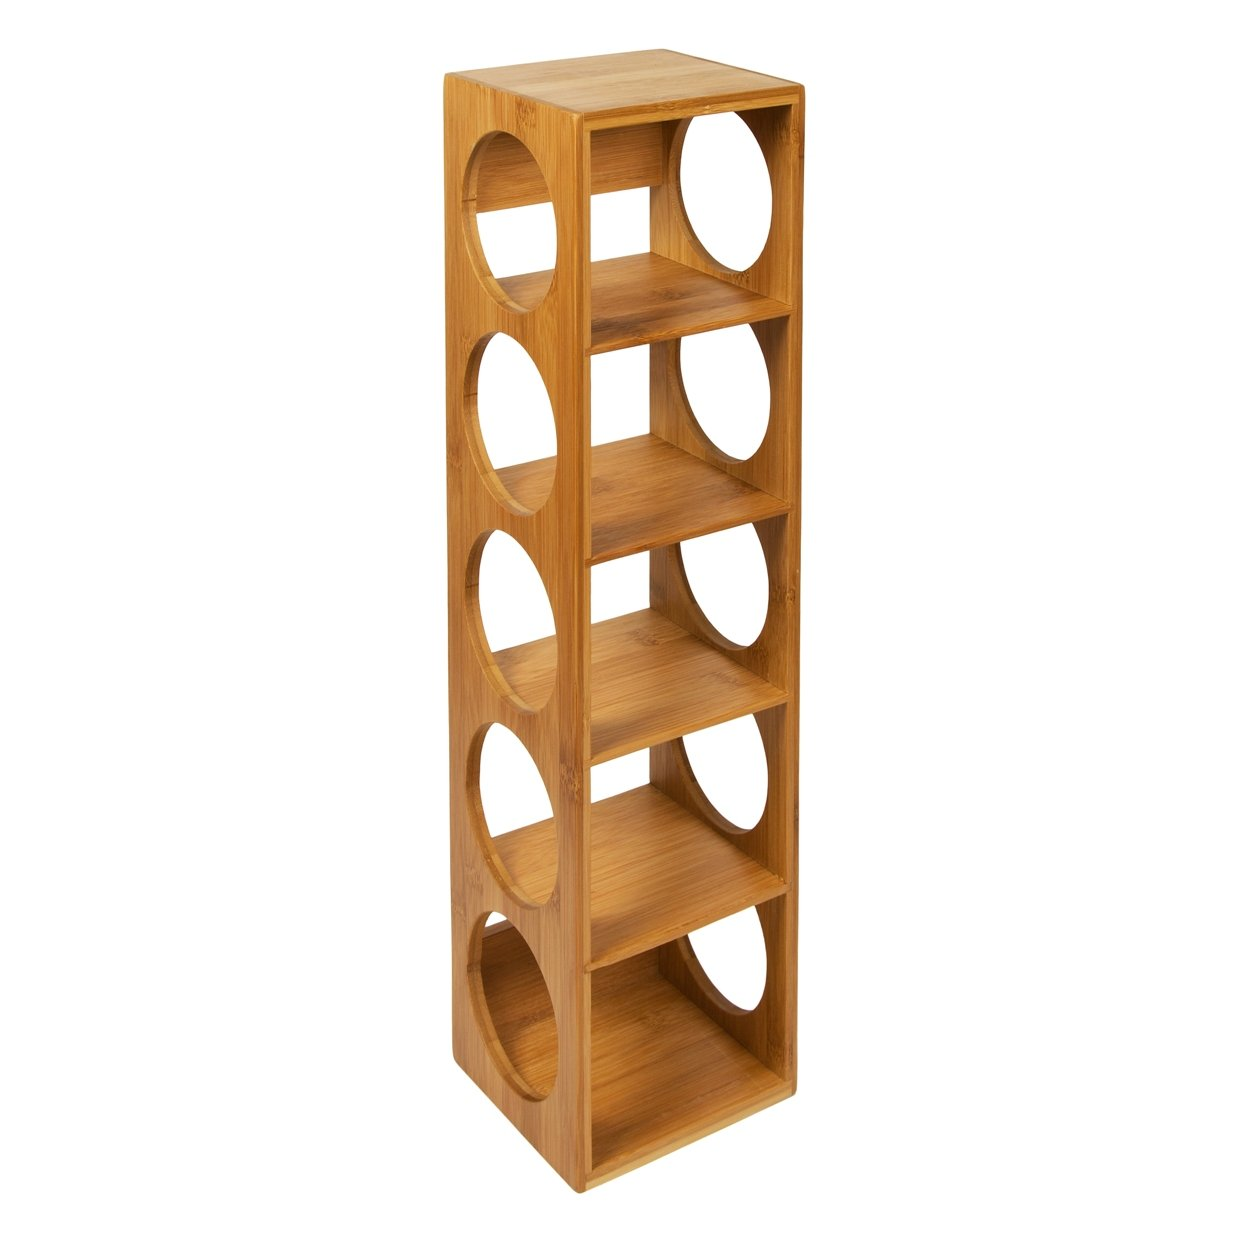 woodluv bamboo stackable wine rack stand holder amazoncouk  - woodluv bamboo stackable wine rack stand holder amazoncouk kitchen home